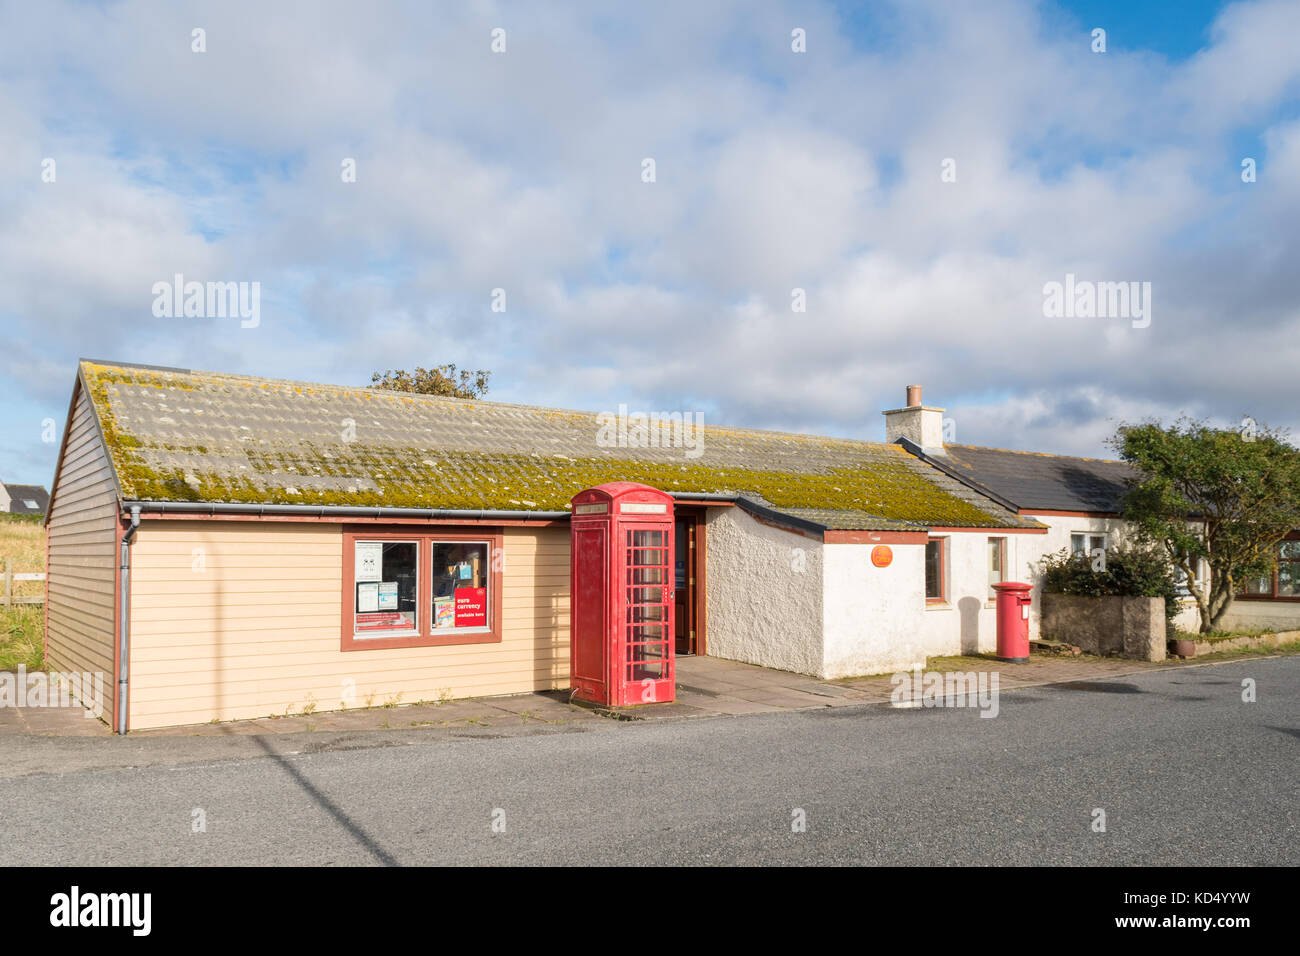 Baltasound Post Office, Unst, Shetland Islands, Scotland - Britain's most northerly post office - Stock Image